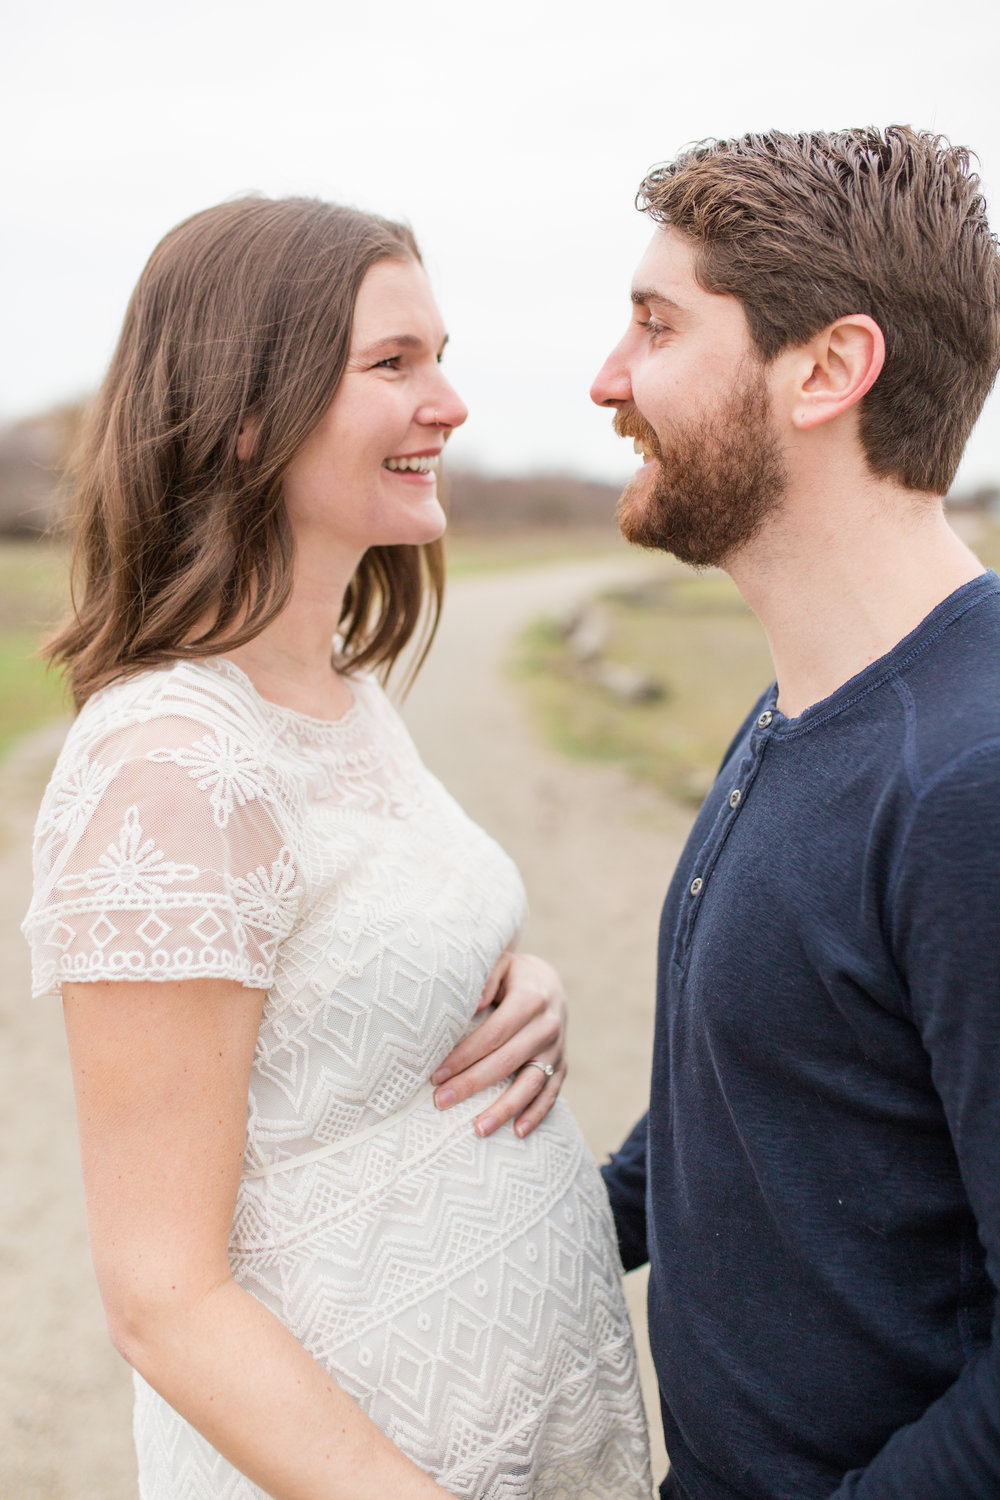 Centennial Beach Maternity Photos-35.jpg